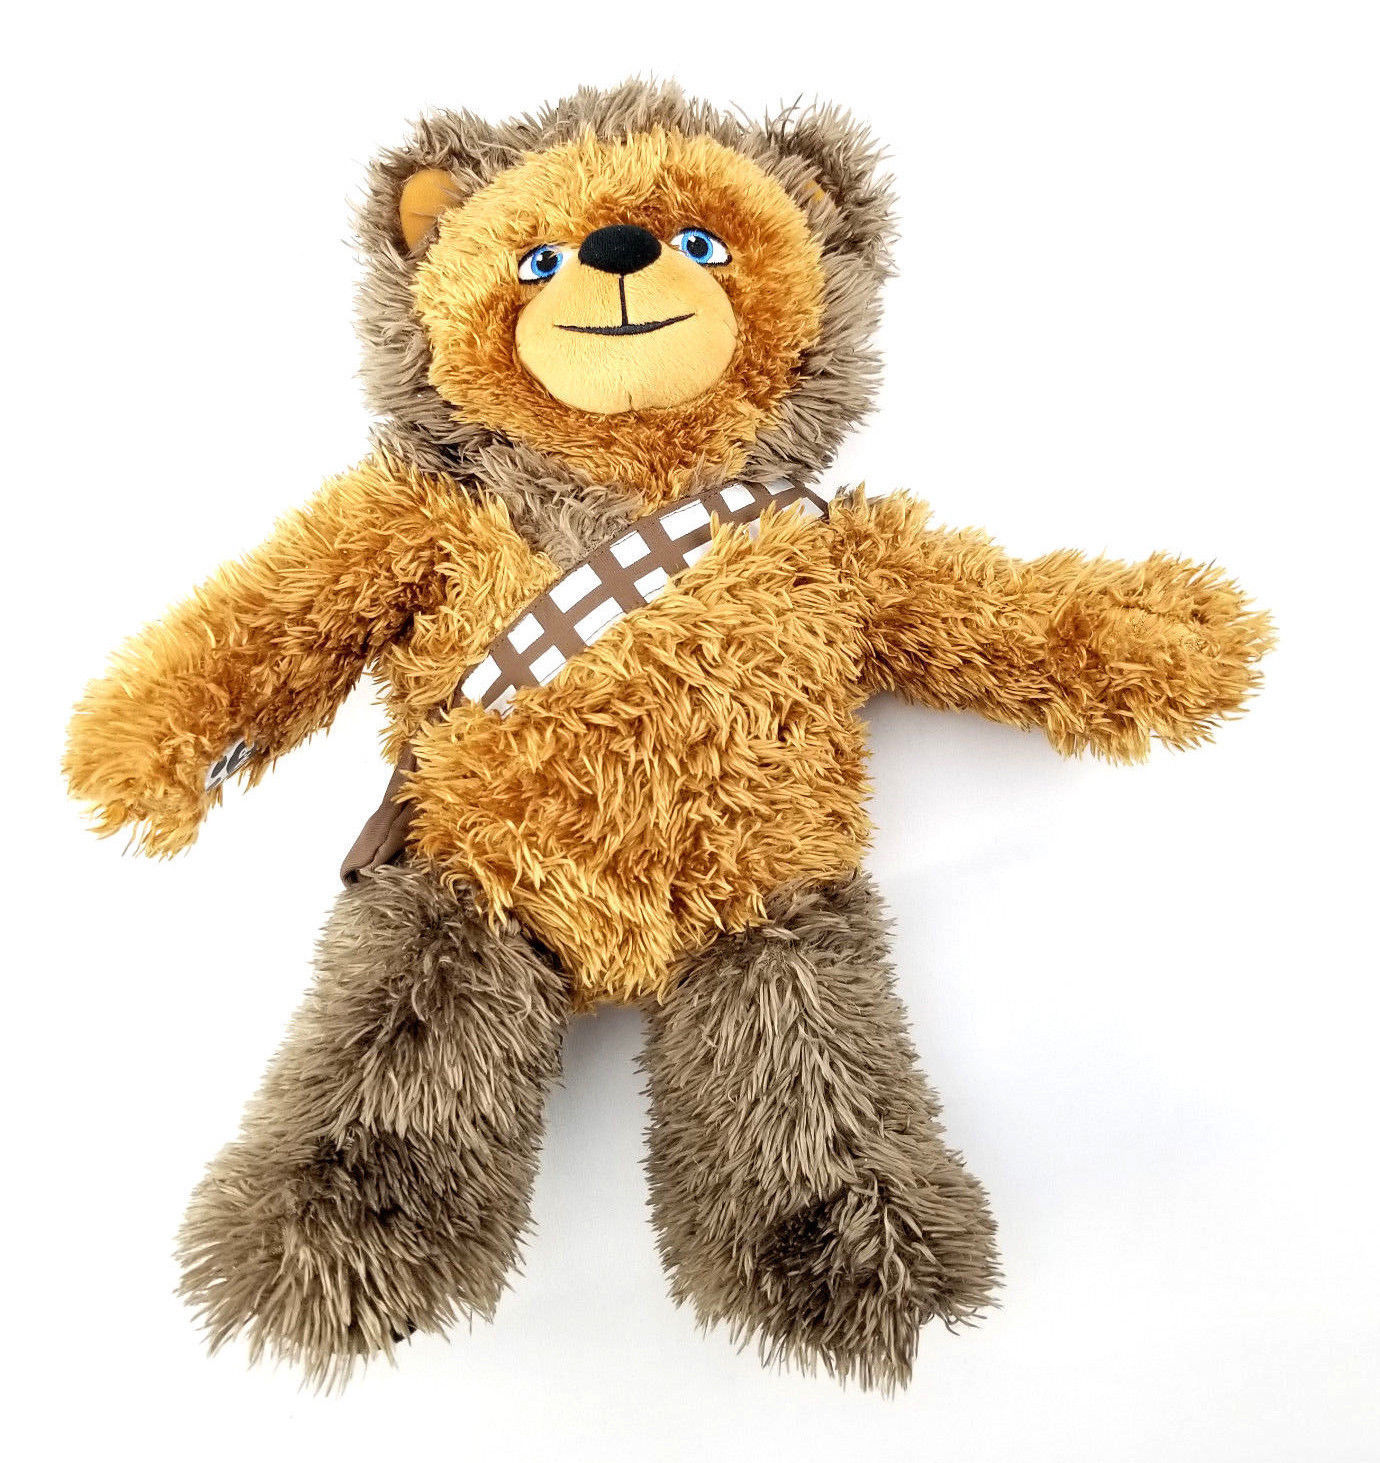 Build a Bear Star Wars Plush Doll Limited Edition Toy Chewbacca